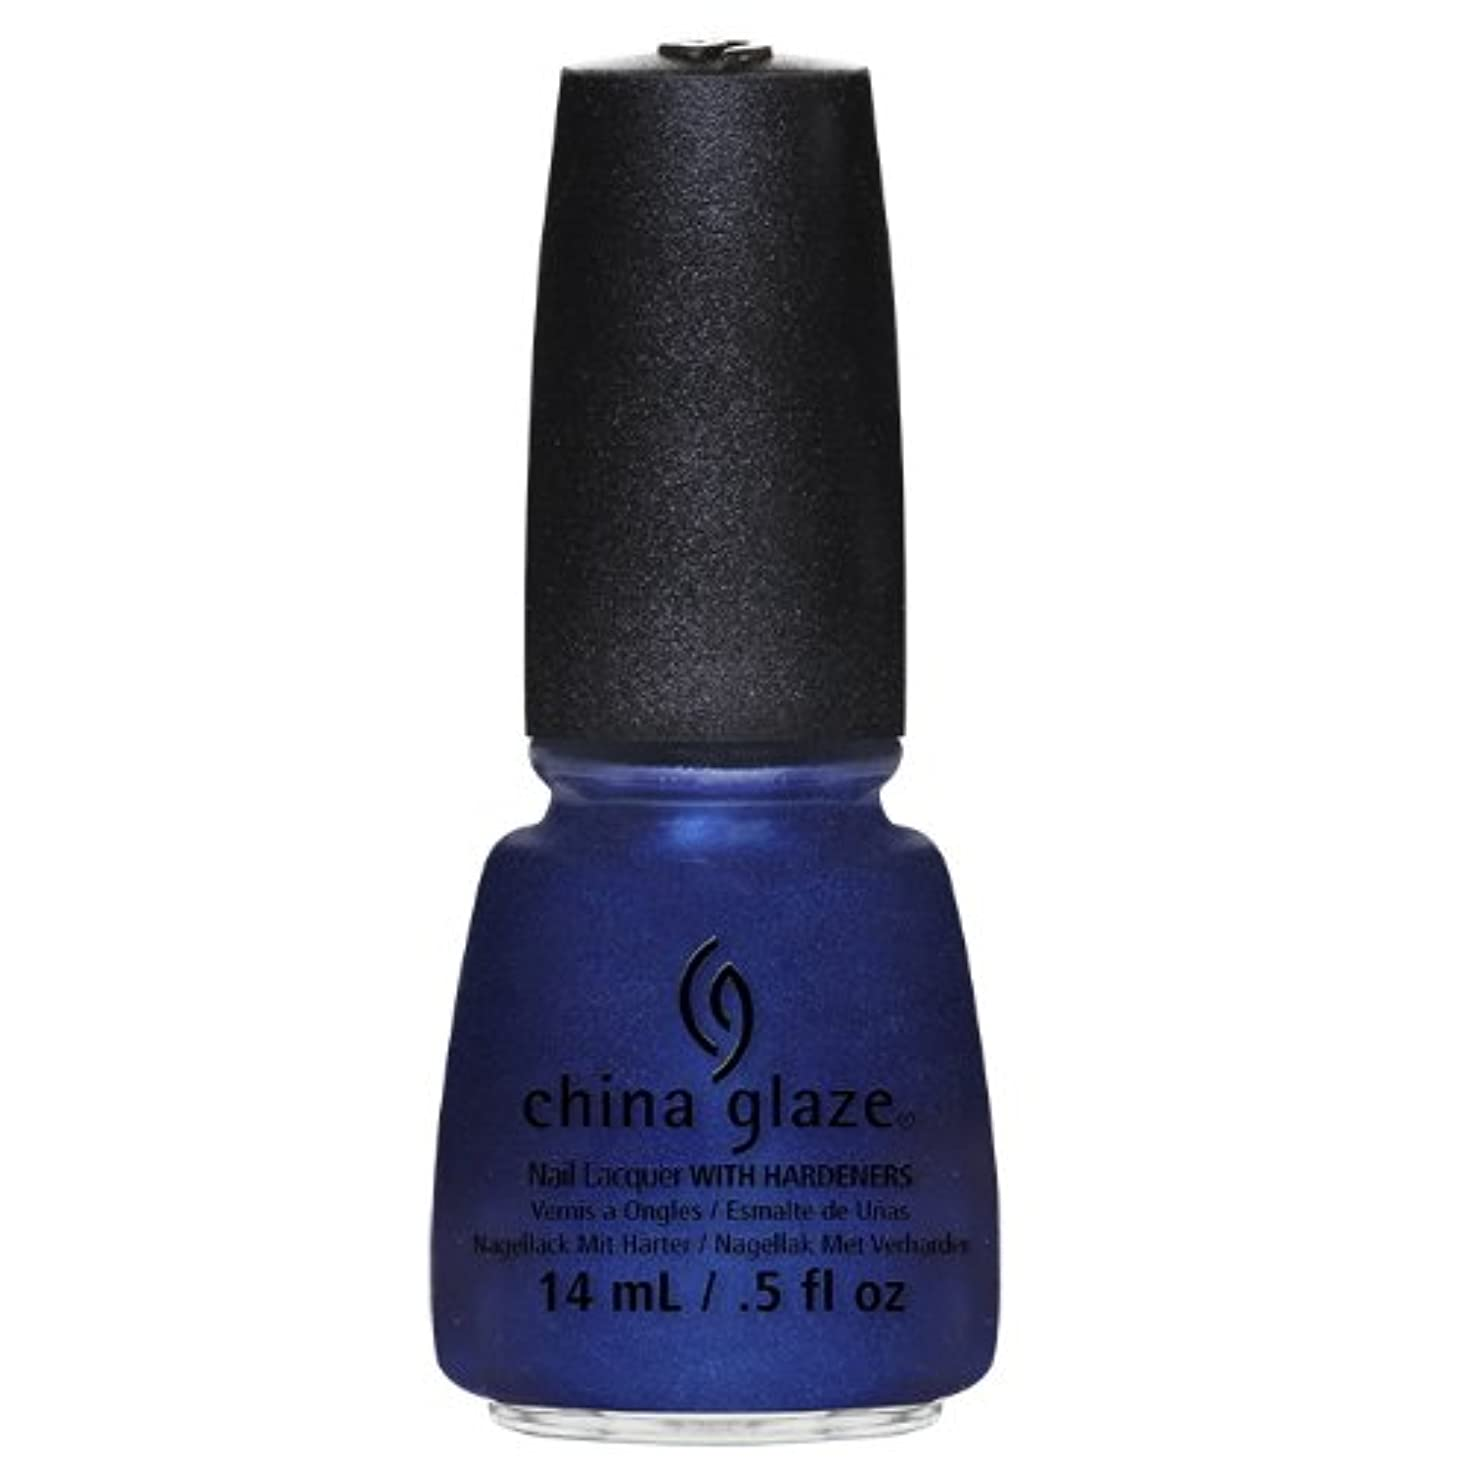 分数束ねる転倒(3 Pack) CHINA GLAZE Nail Lacquer - Autumn Nights - Scandalous Shenanigans (並行輸入品)